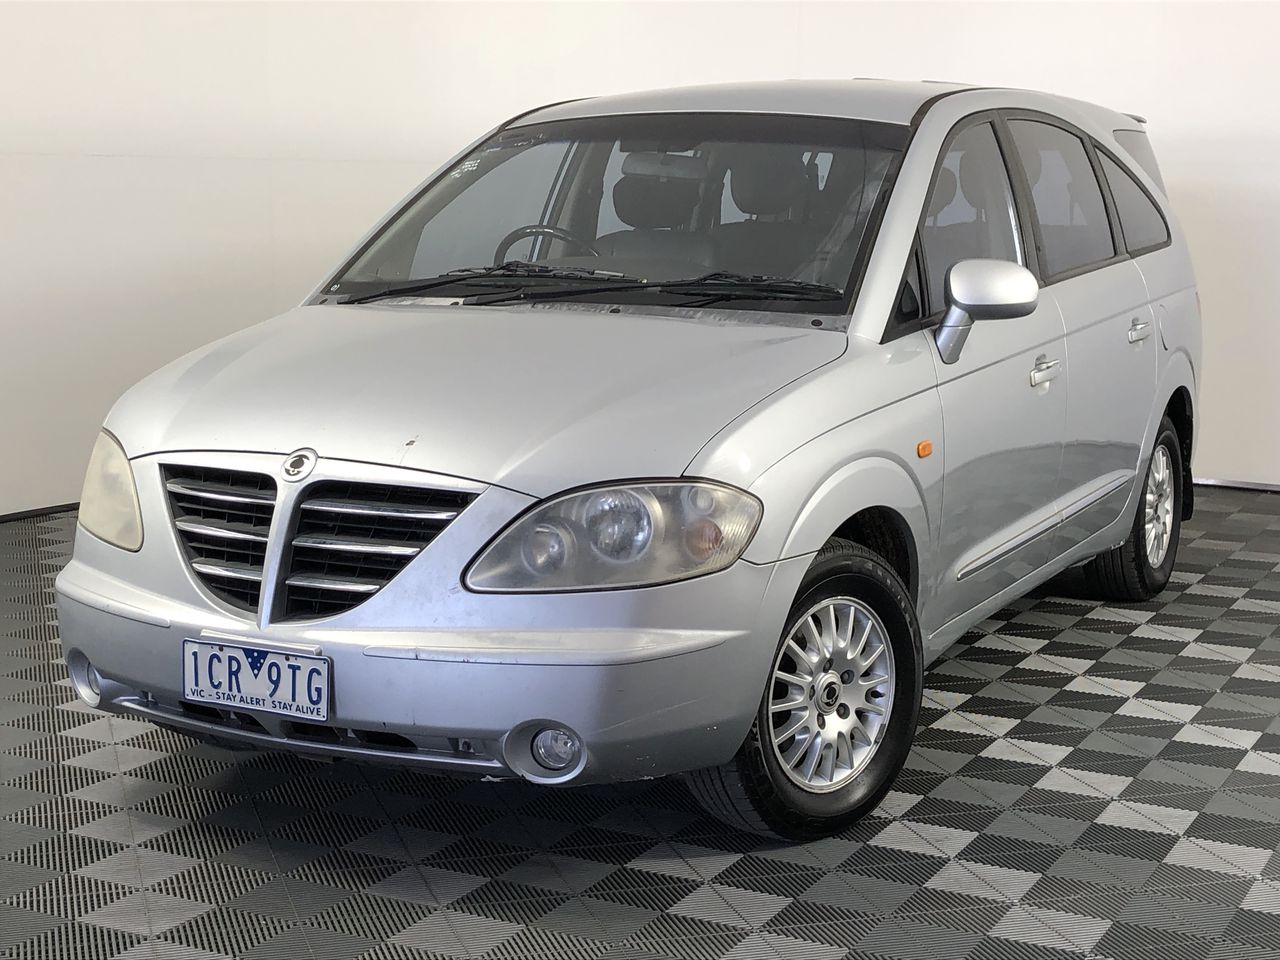 2006 Ssangyong Stavic SV270 Sports Plus Turbo Diesel Manual 7 Seats